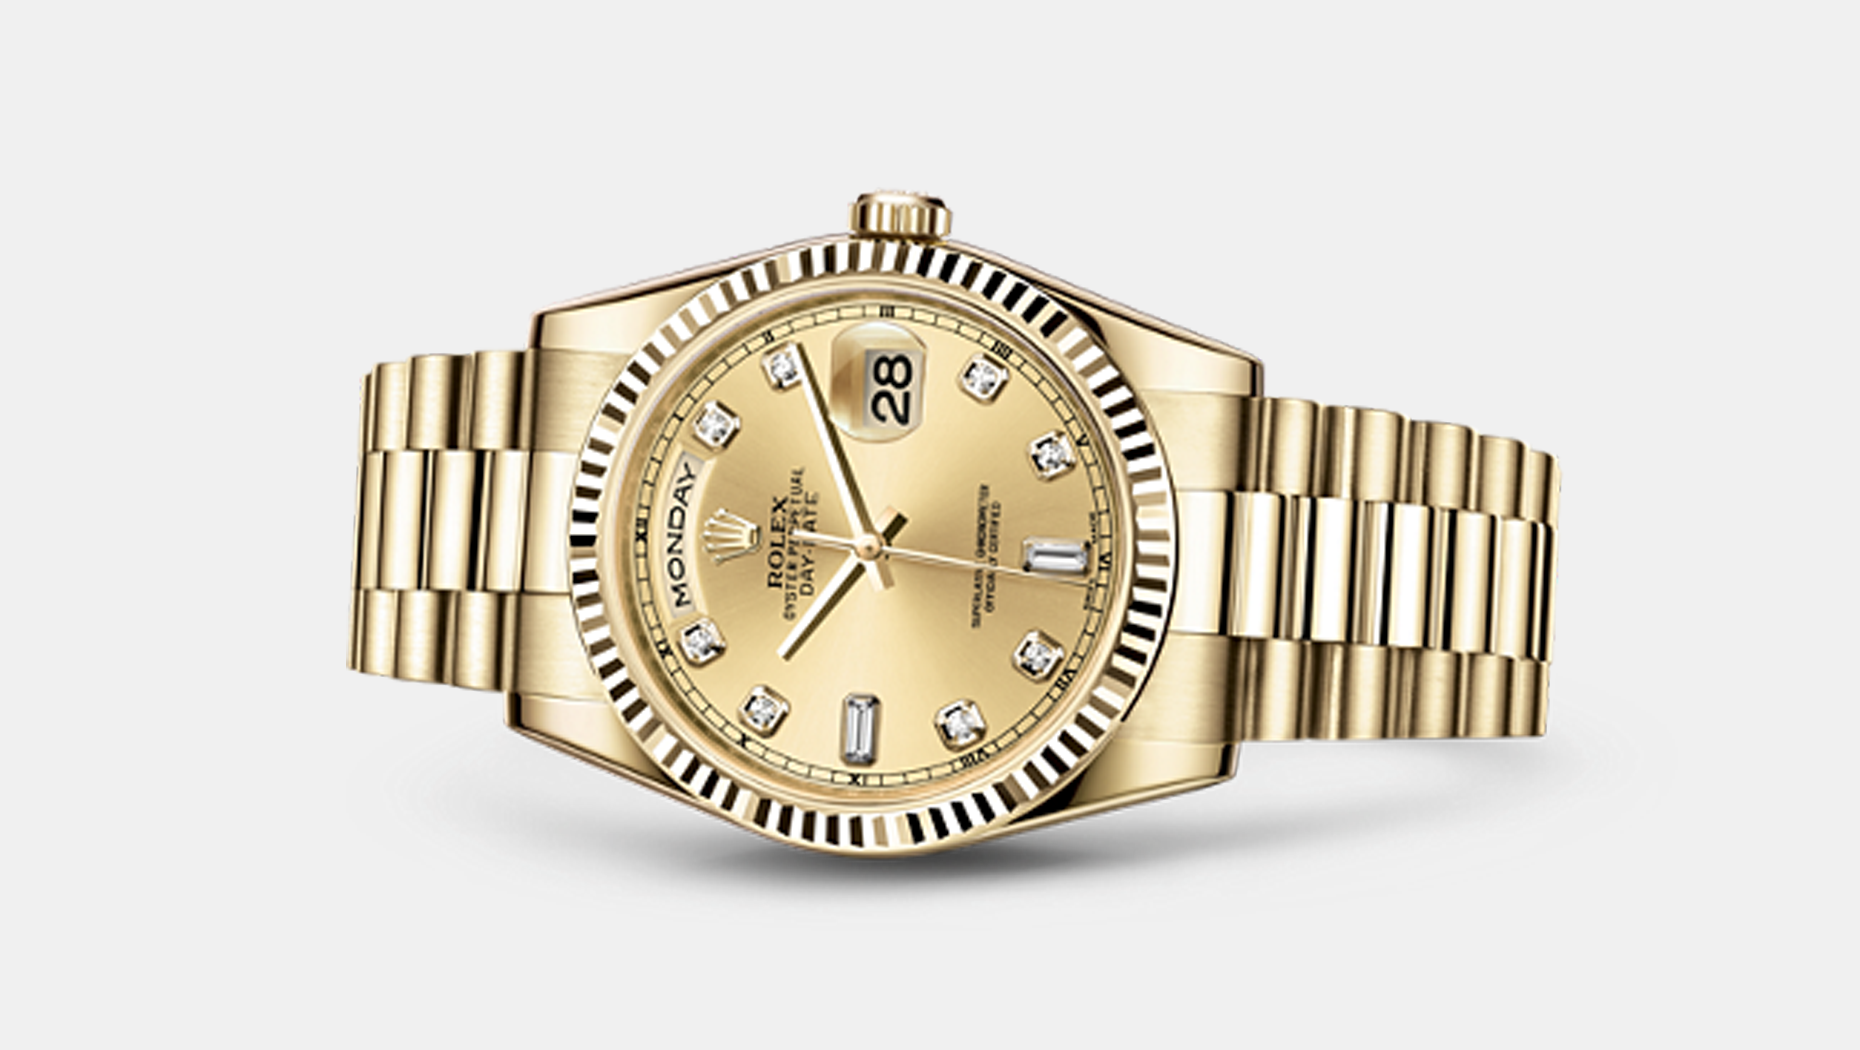 WHERE CAN I SELL MY ROLEX WATCH IN MIAMI FL